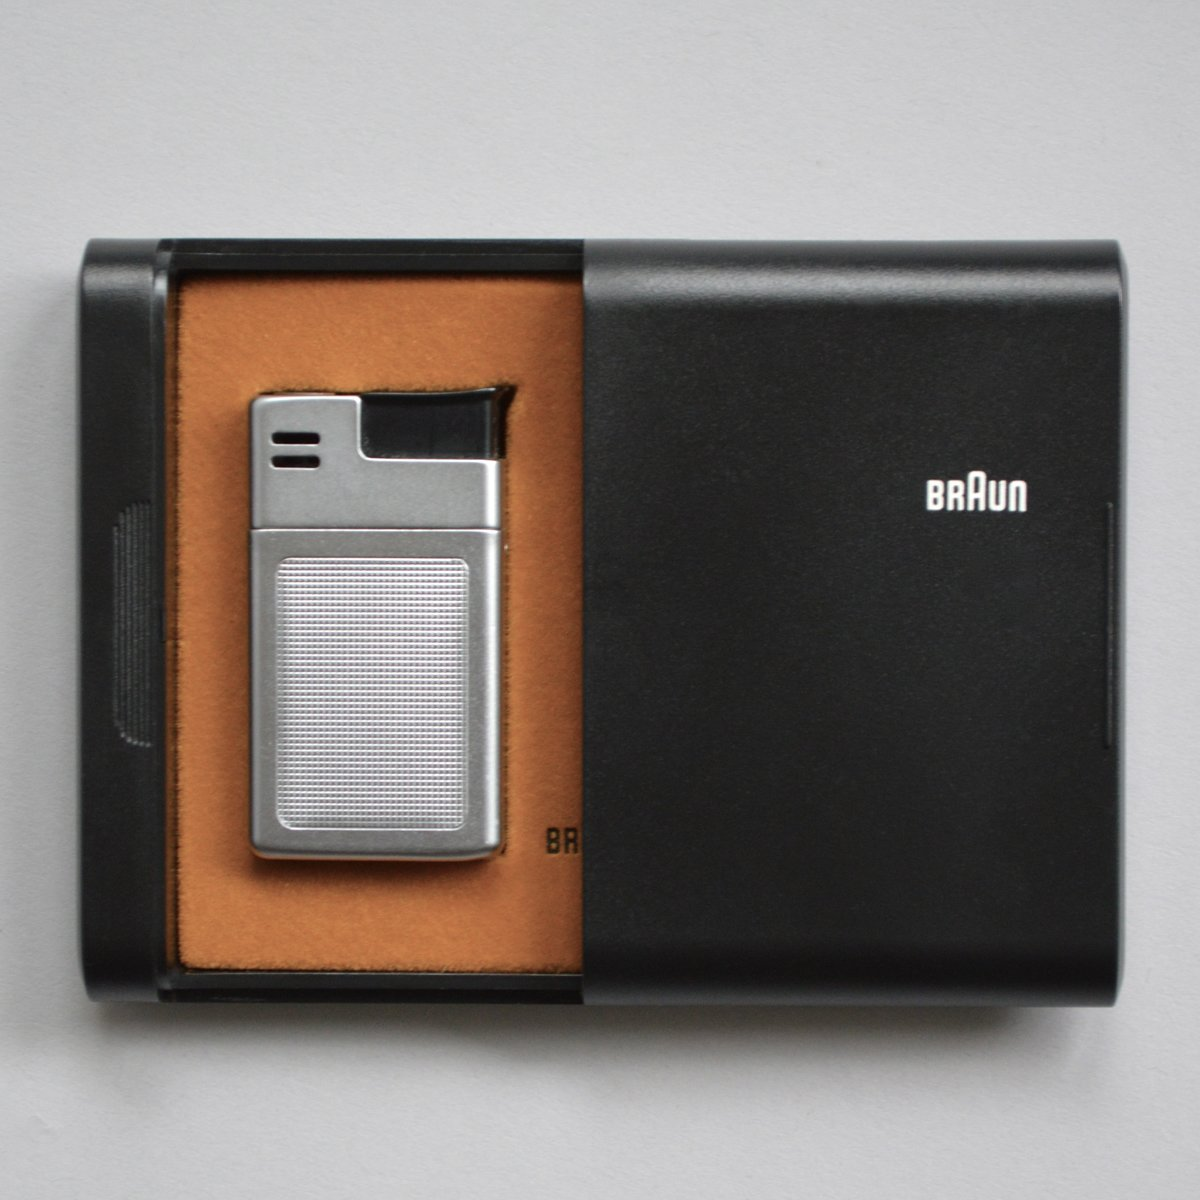 Braun Mach 2 lighter by Dieter Rams with Florian Seiffert (1971), with case. Shop the Vintage Braun Catalog from Your Web Browser - Photo 2 of 8